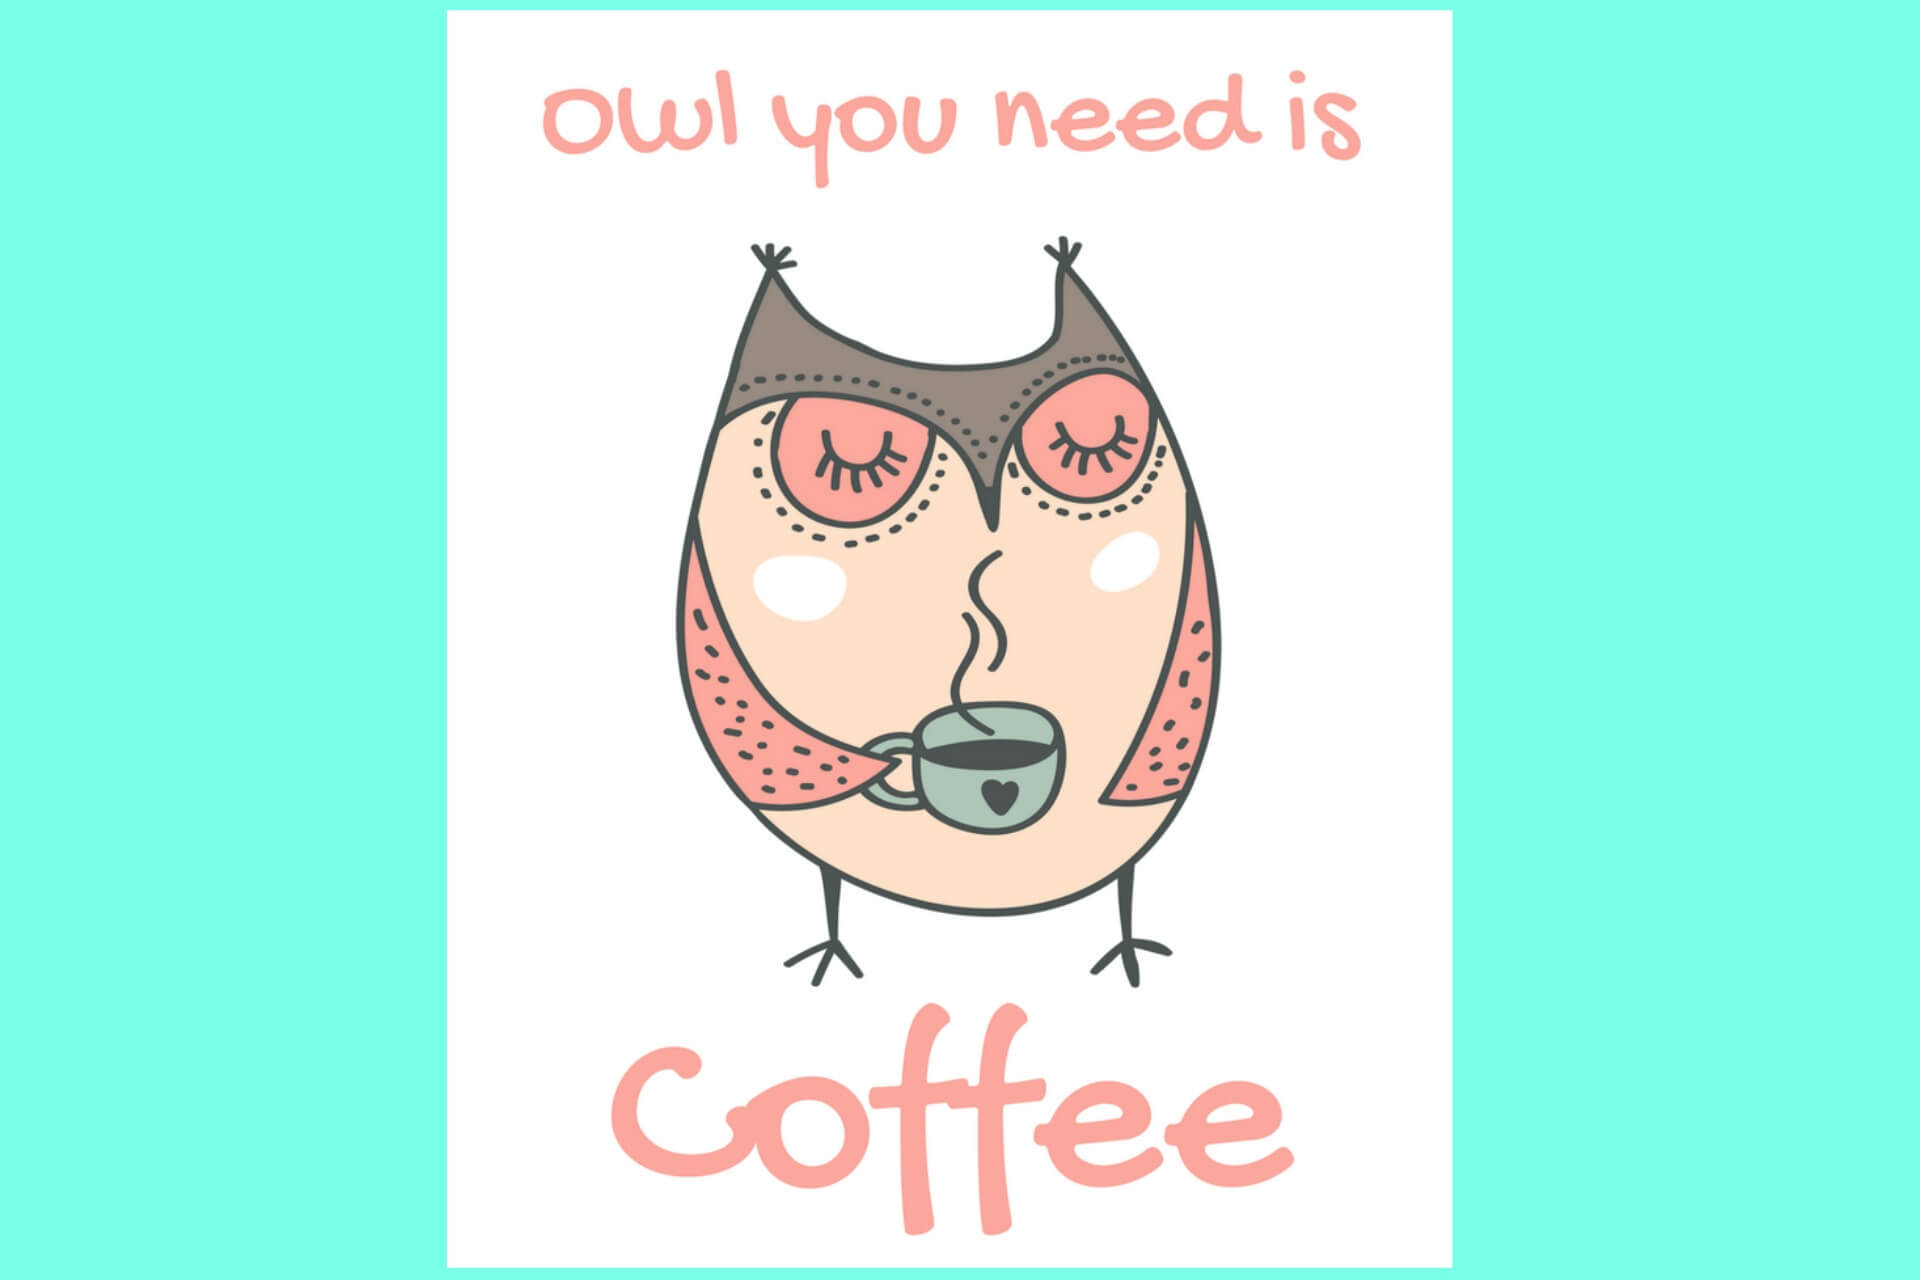 photograph regarding Owl Printable titled Cost-free Owl Printable - Owl On your own Require is Espresso - Merry With regards to City